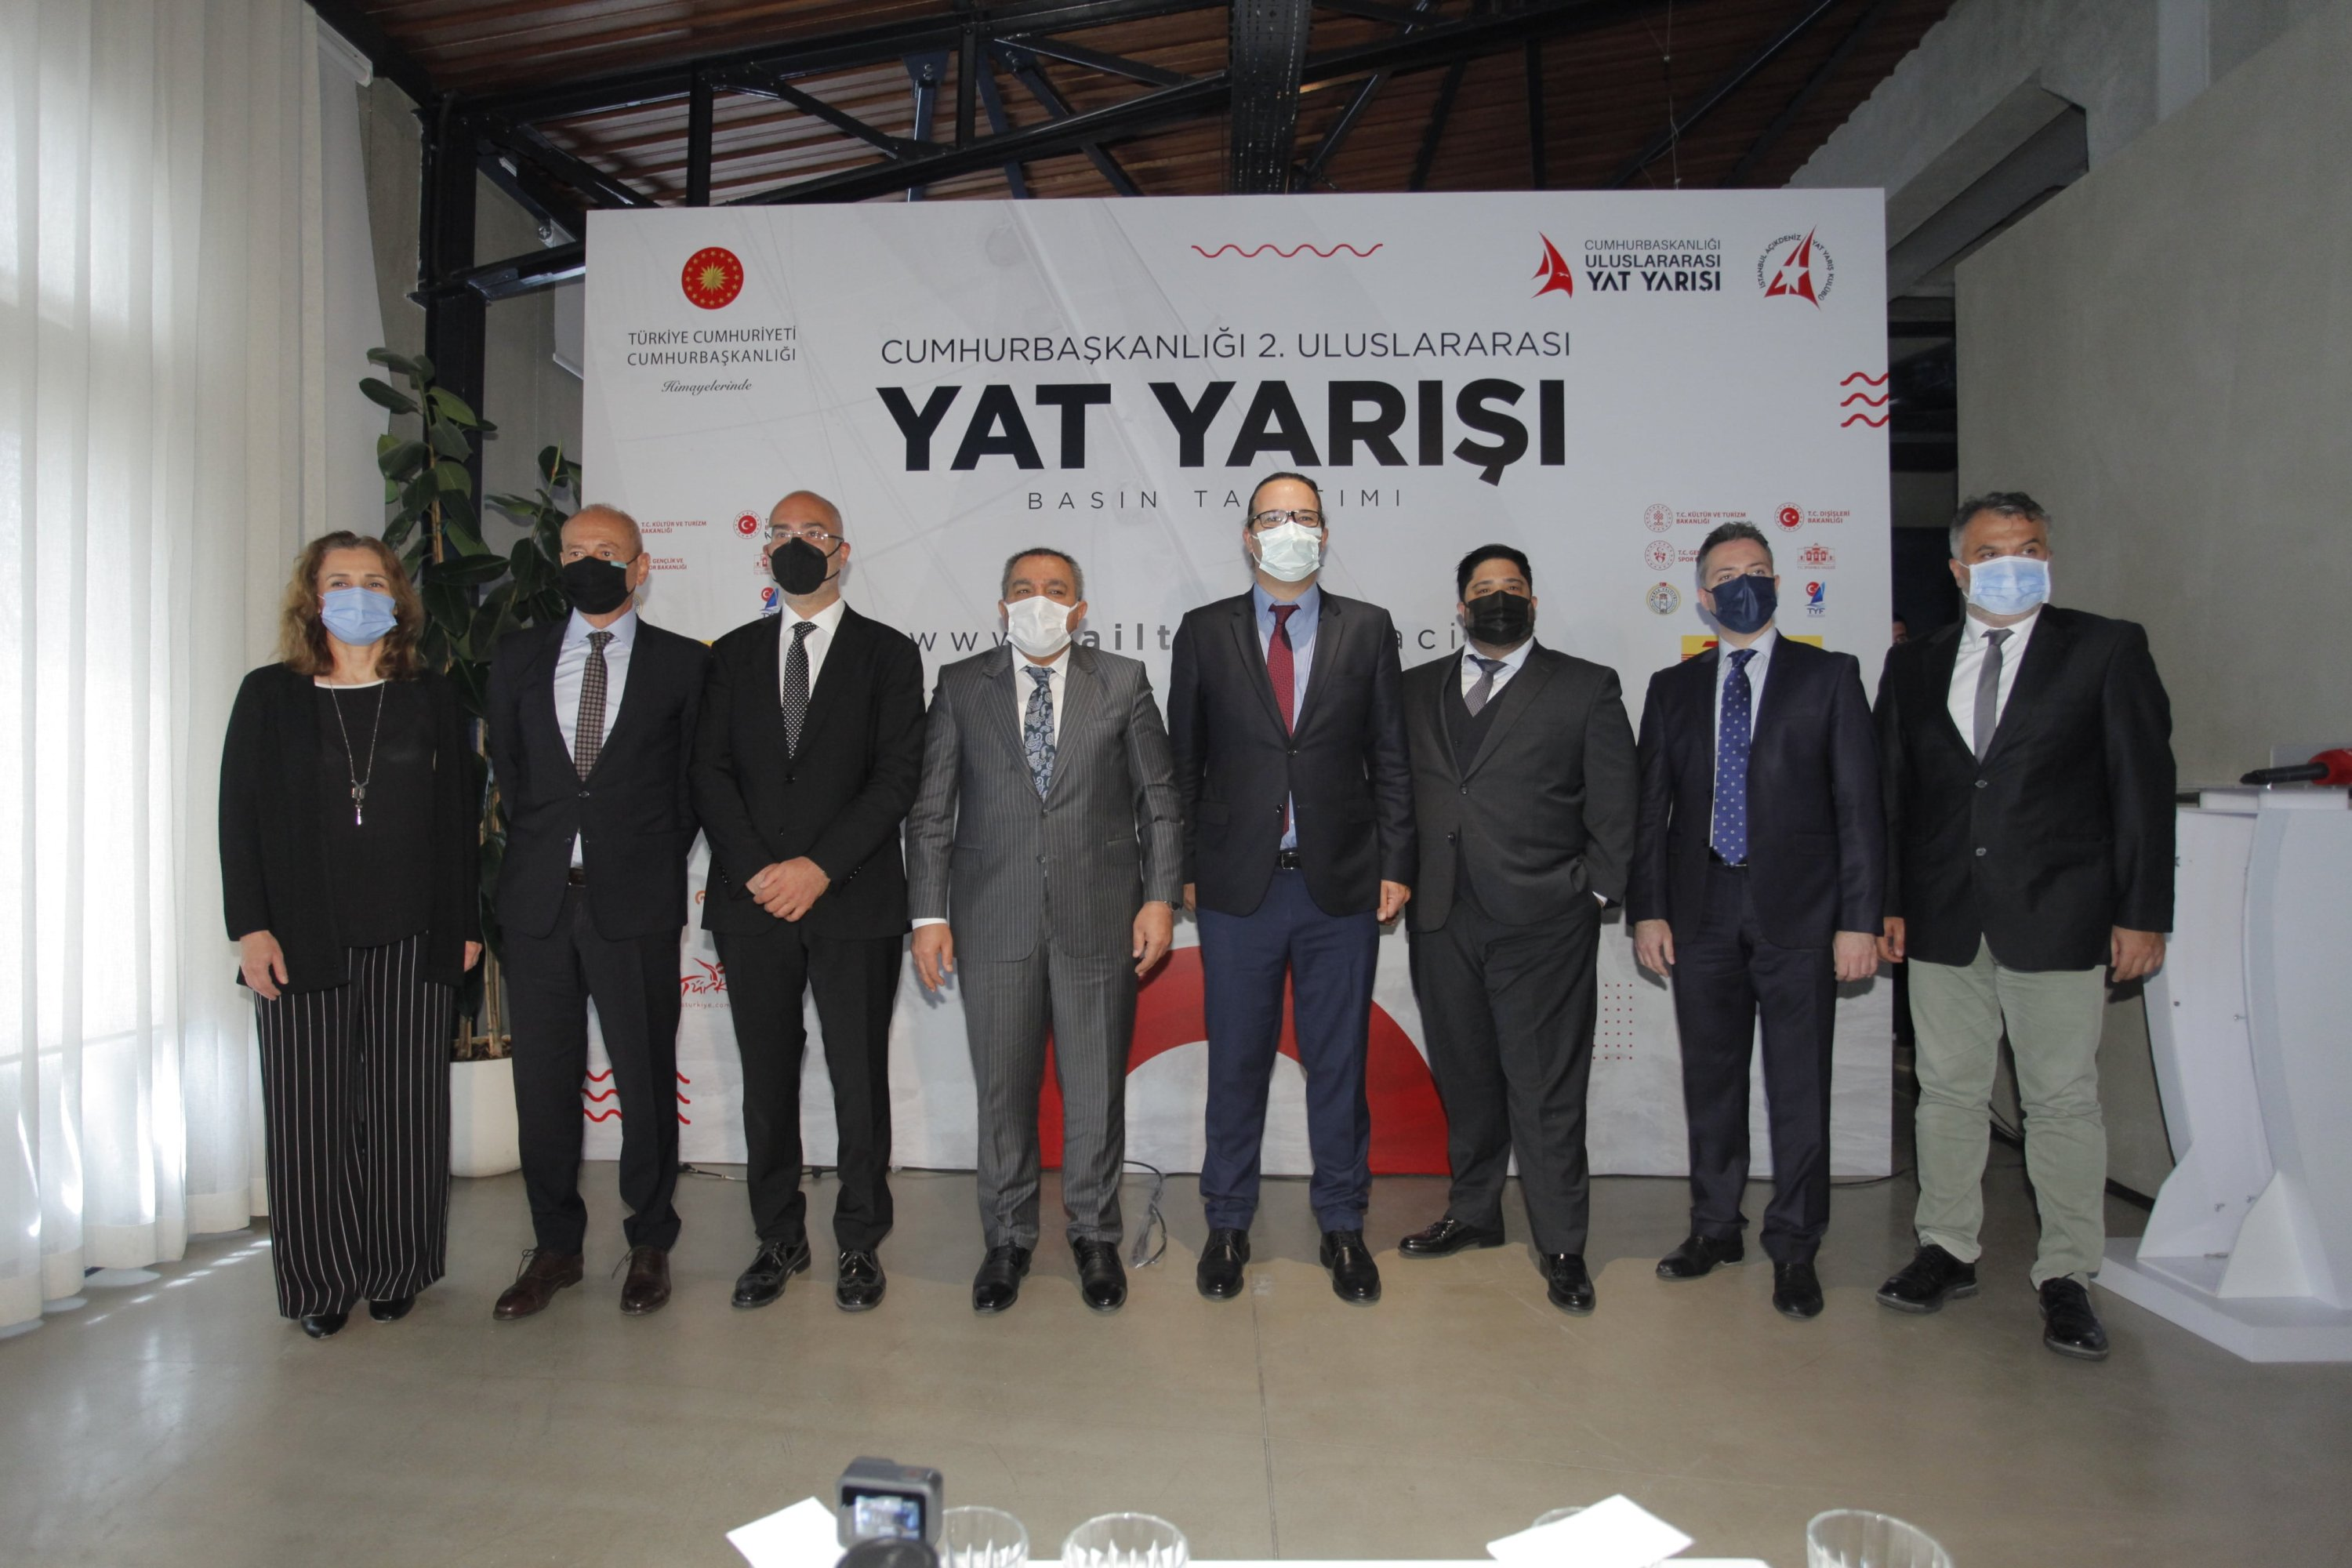 Guests attend a meet-the-press event for the 2nd Presidential International Yacht Races, Istanbul, Turkey, June 8, 2021. (Courtesy of sailturkey.racing)